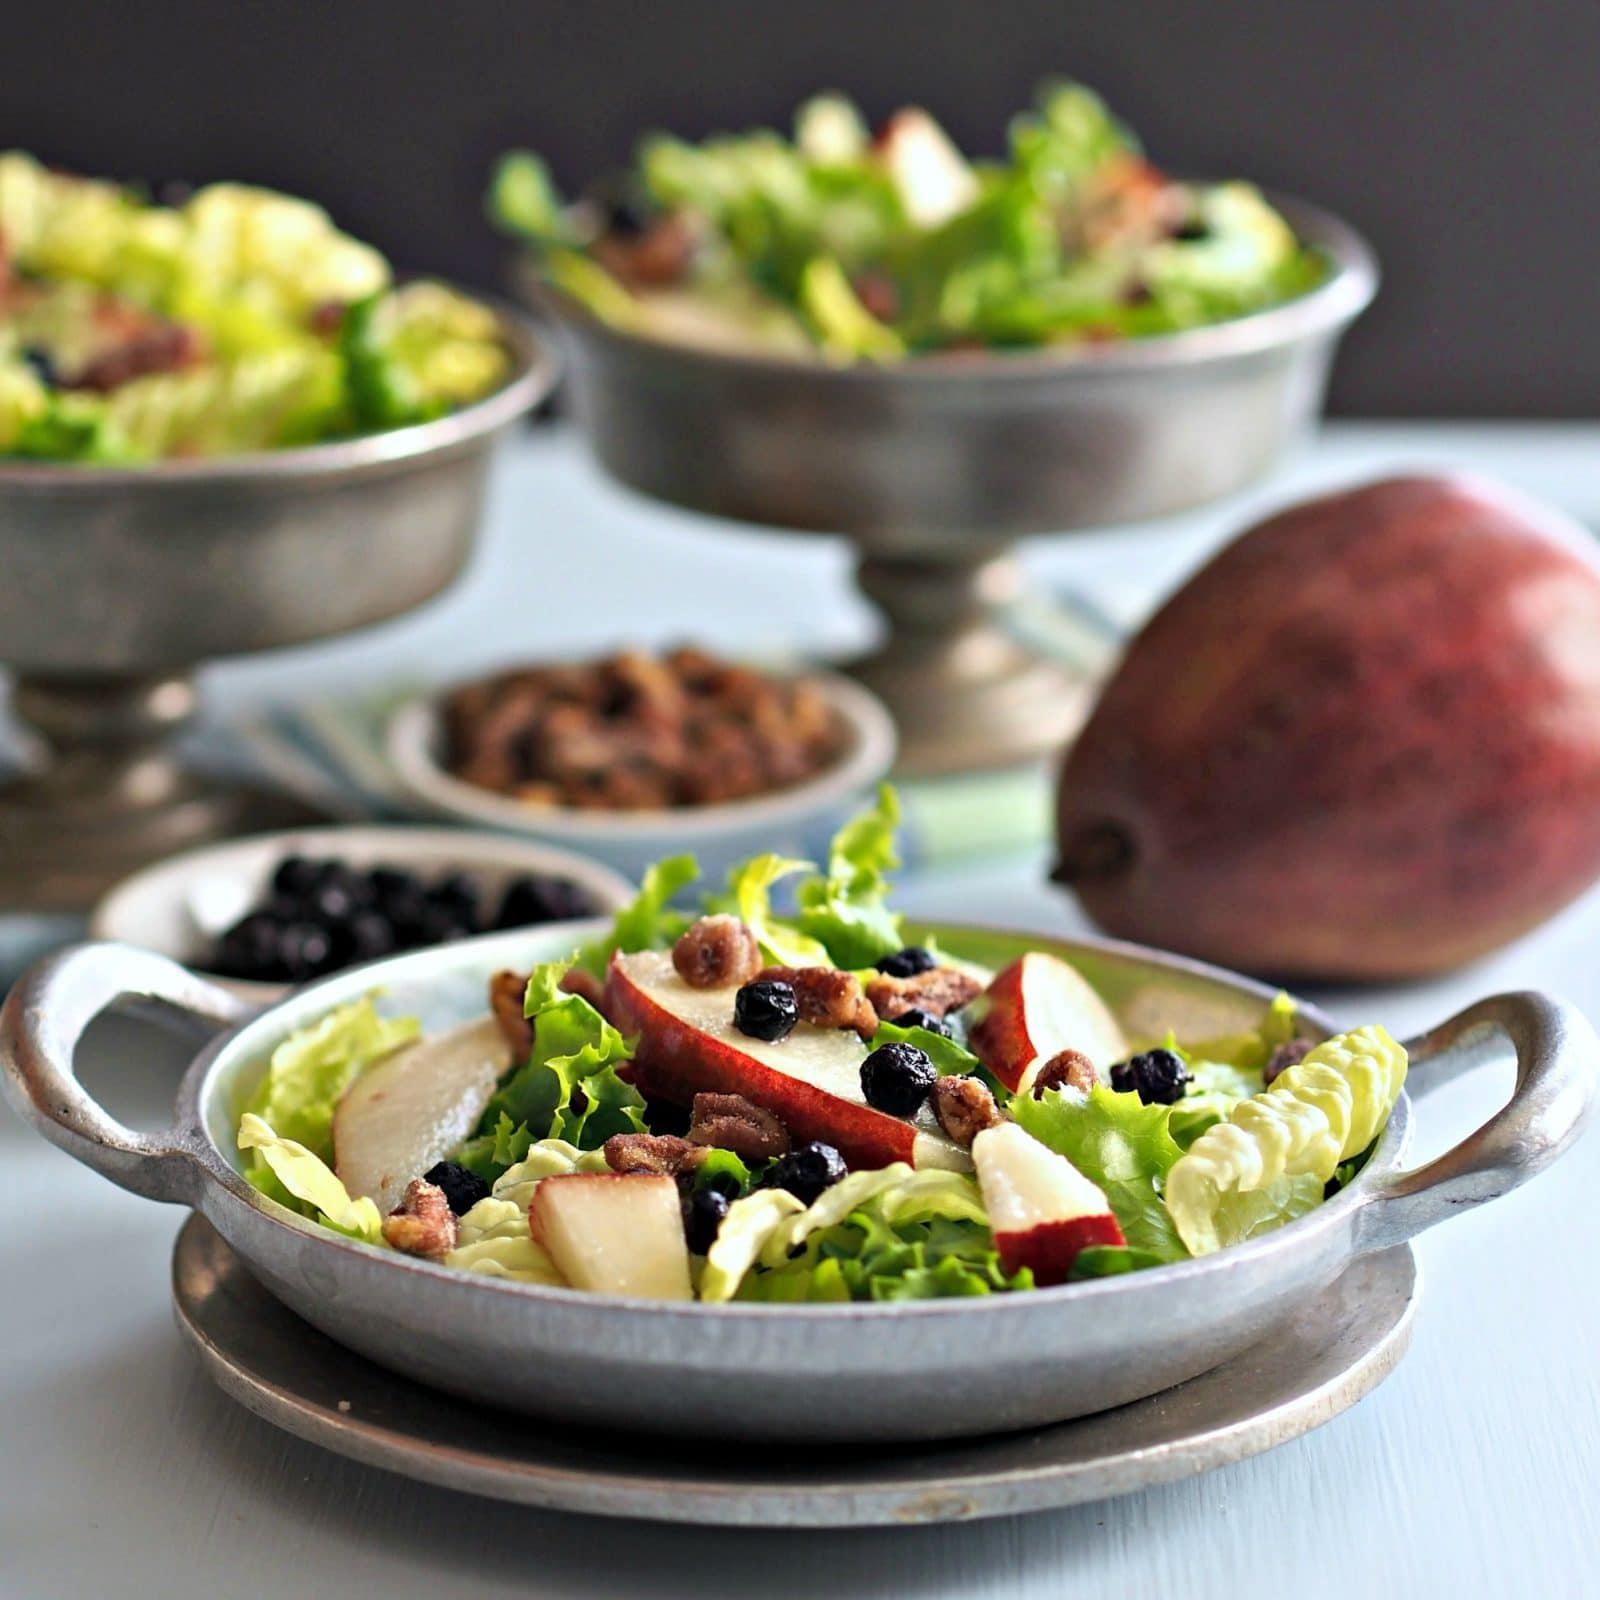 Pecans Blueberries Pears & Greens Salad is fresh, crunchy & flavorful. Top with homemade Basil Green Goddess Dressing to create a goddess-worthy salad. Simply Sated